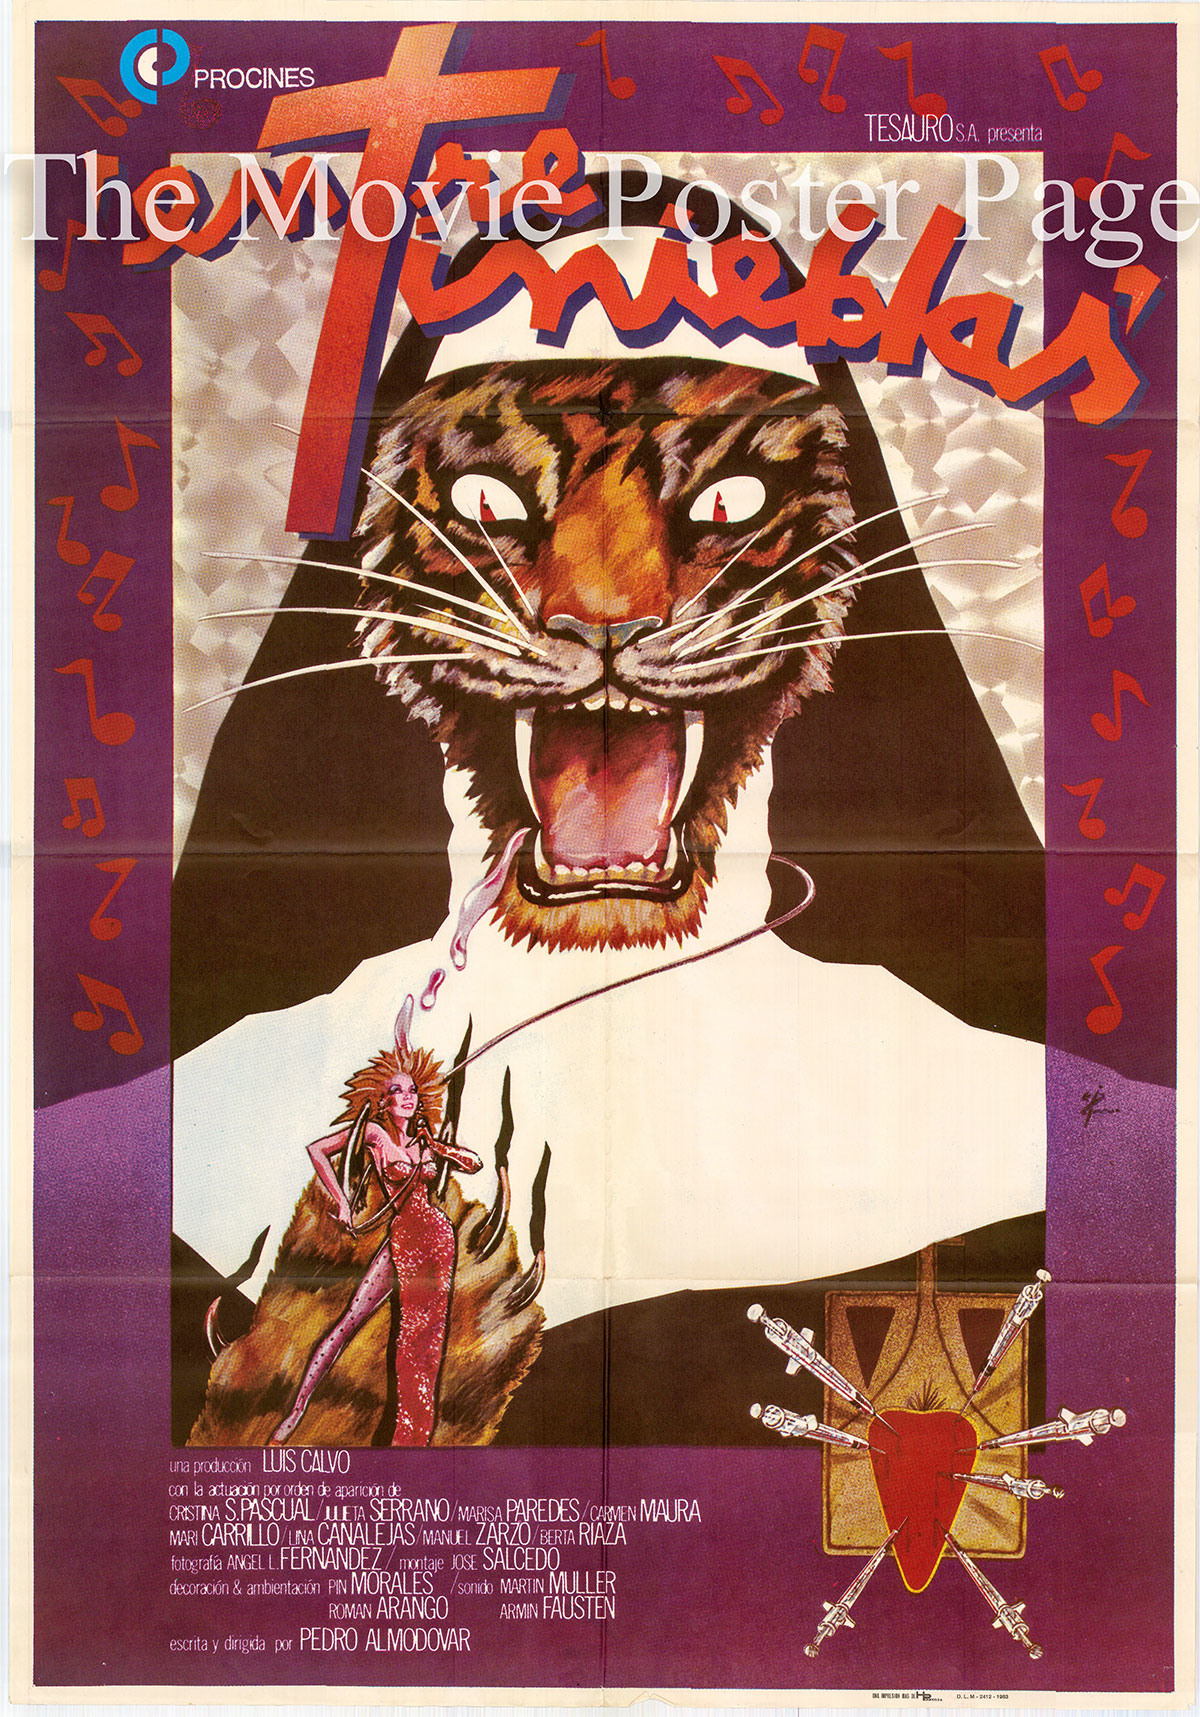 Pictured is a Spanish promotional poster for the 1983 Pedro Almodovar film Dark Habits starring Julieta Serrano.